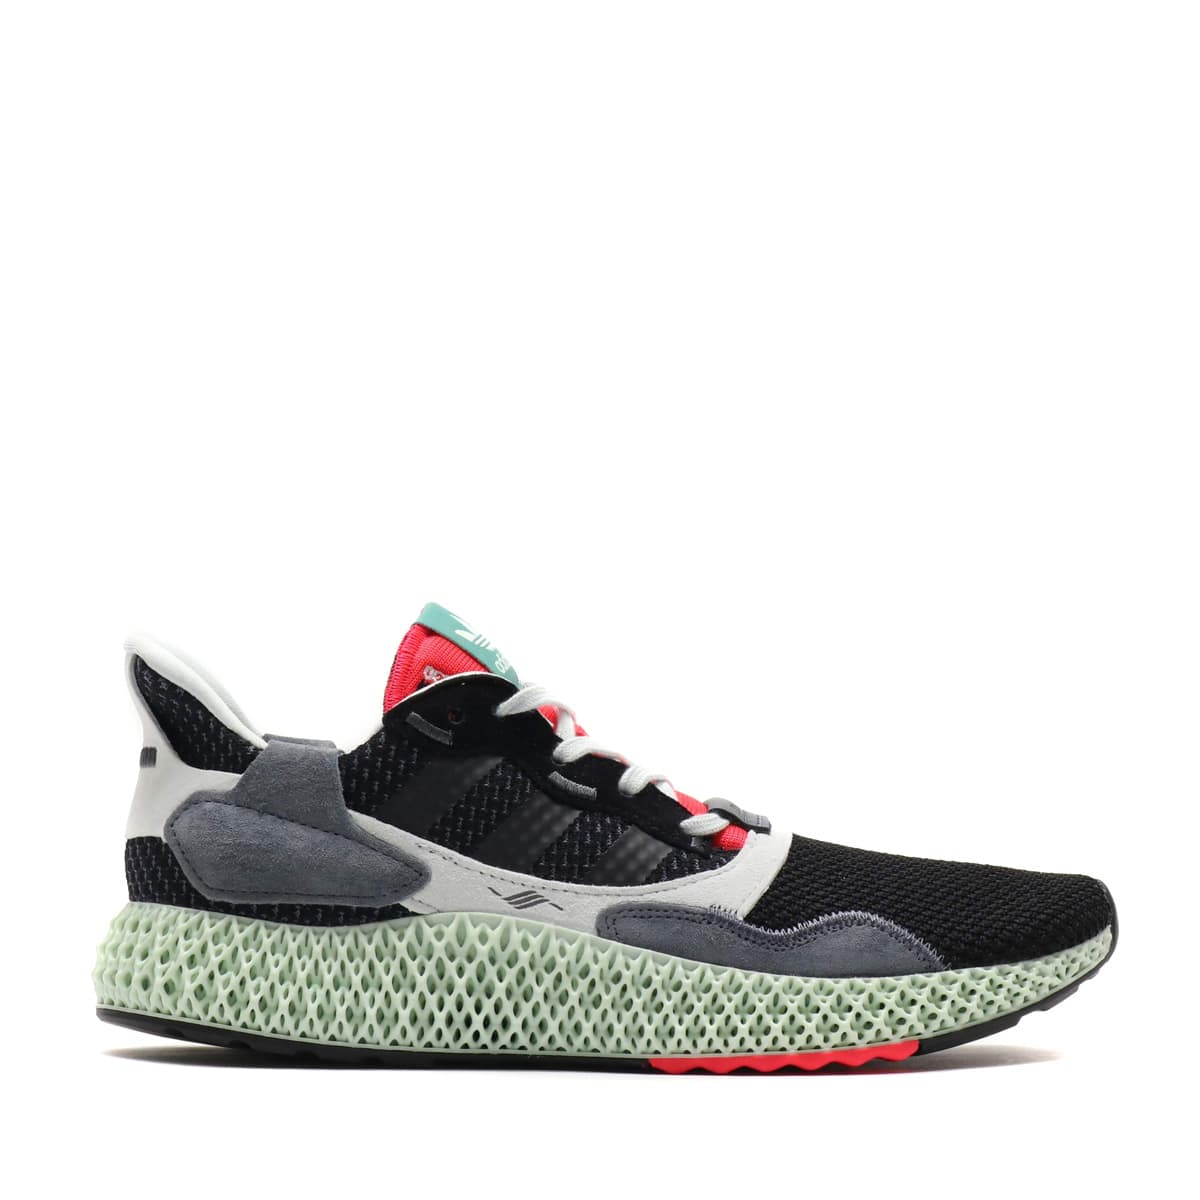 """adidas ZX 4000 4D Core Black/Onix/Running White 19SS-S""_photo_2"